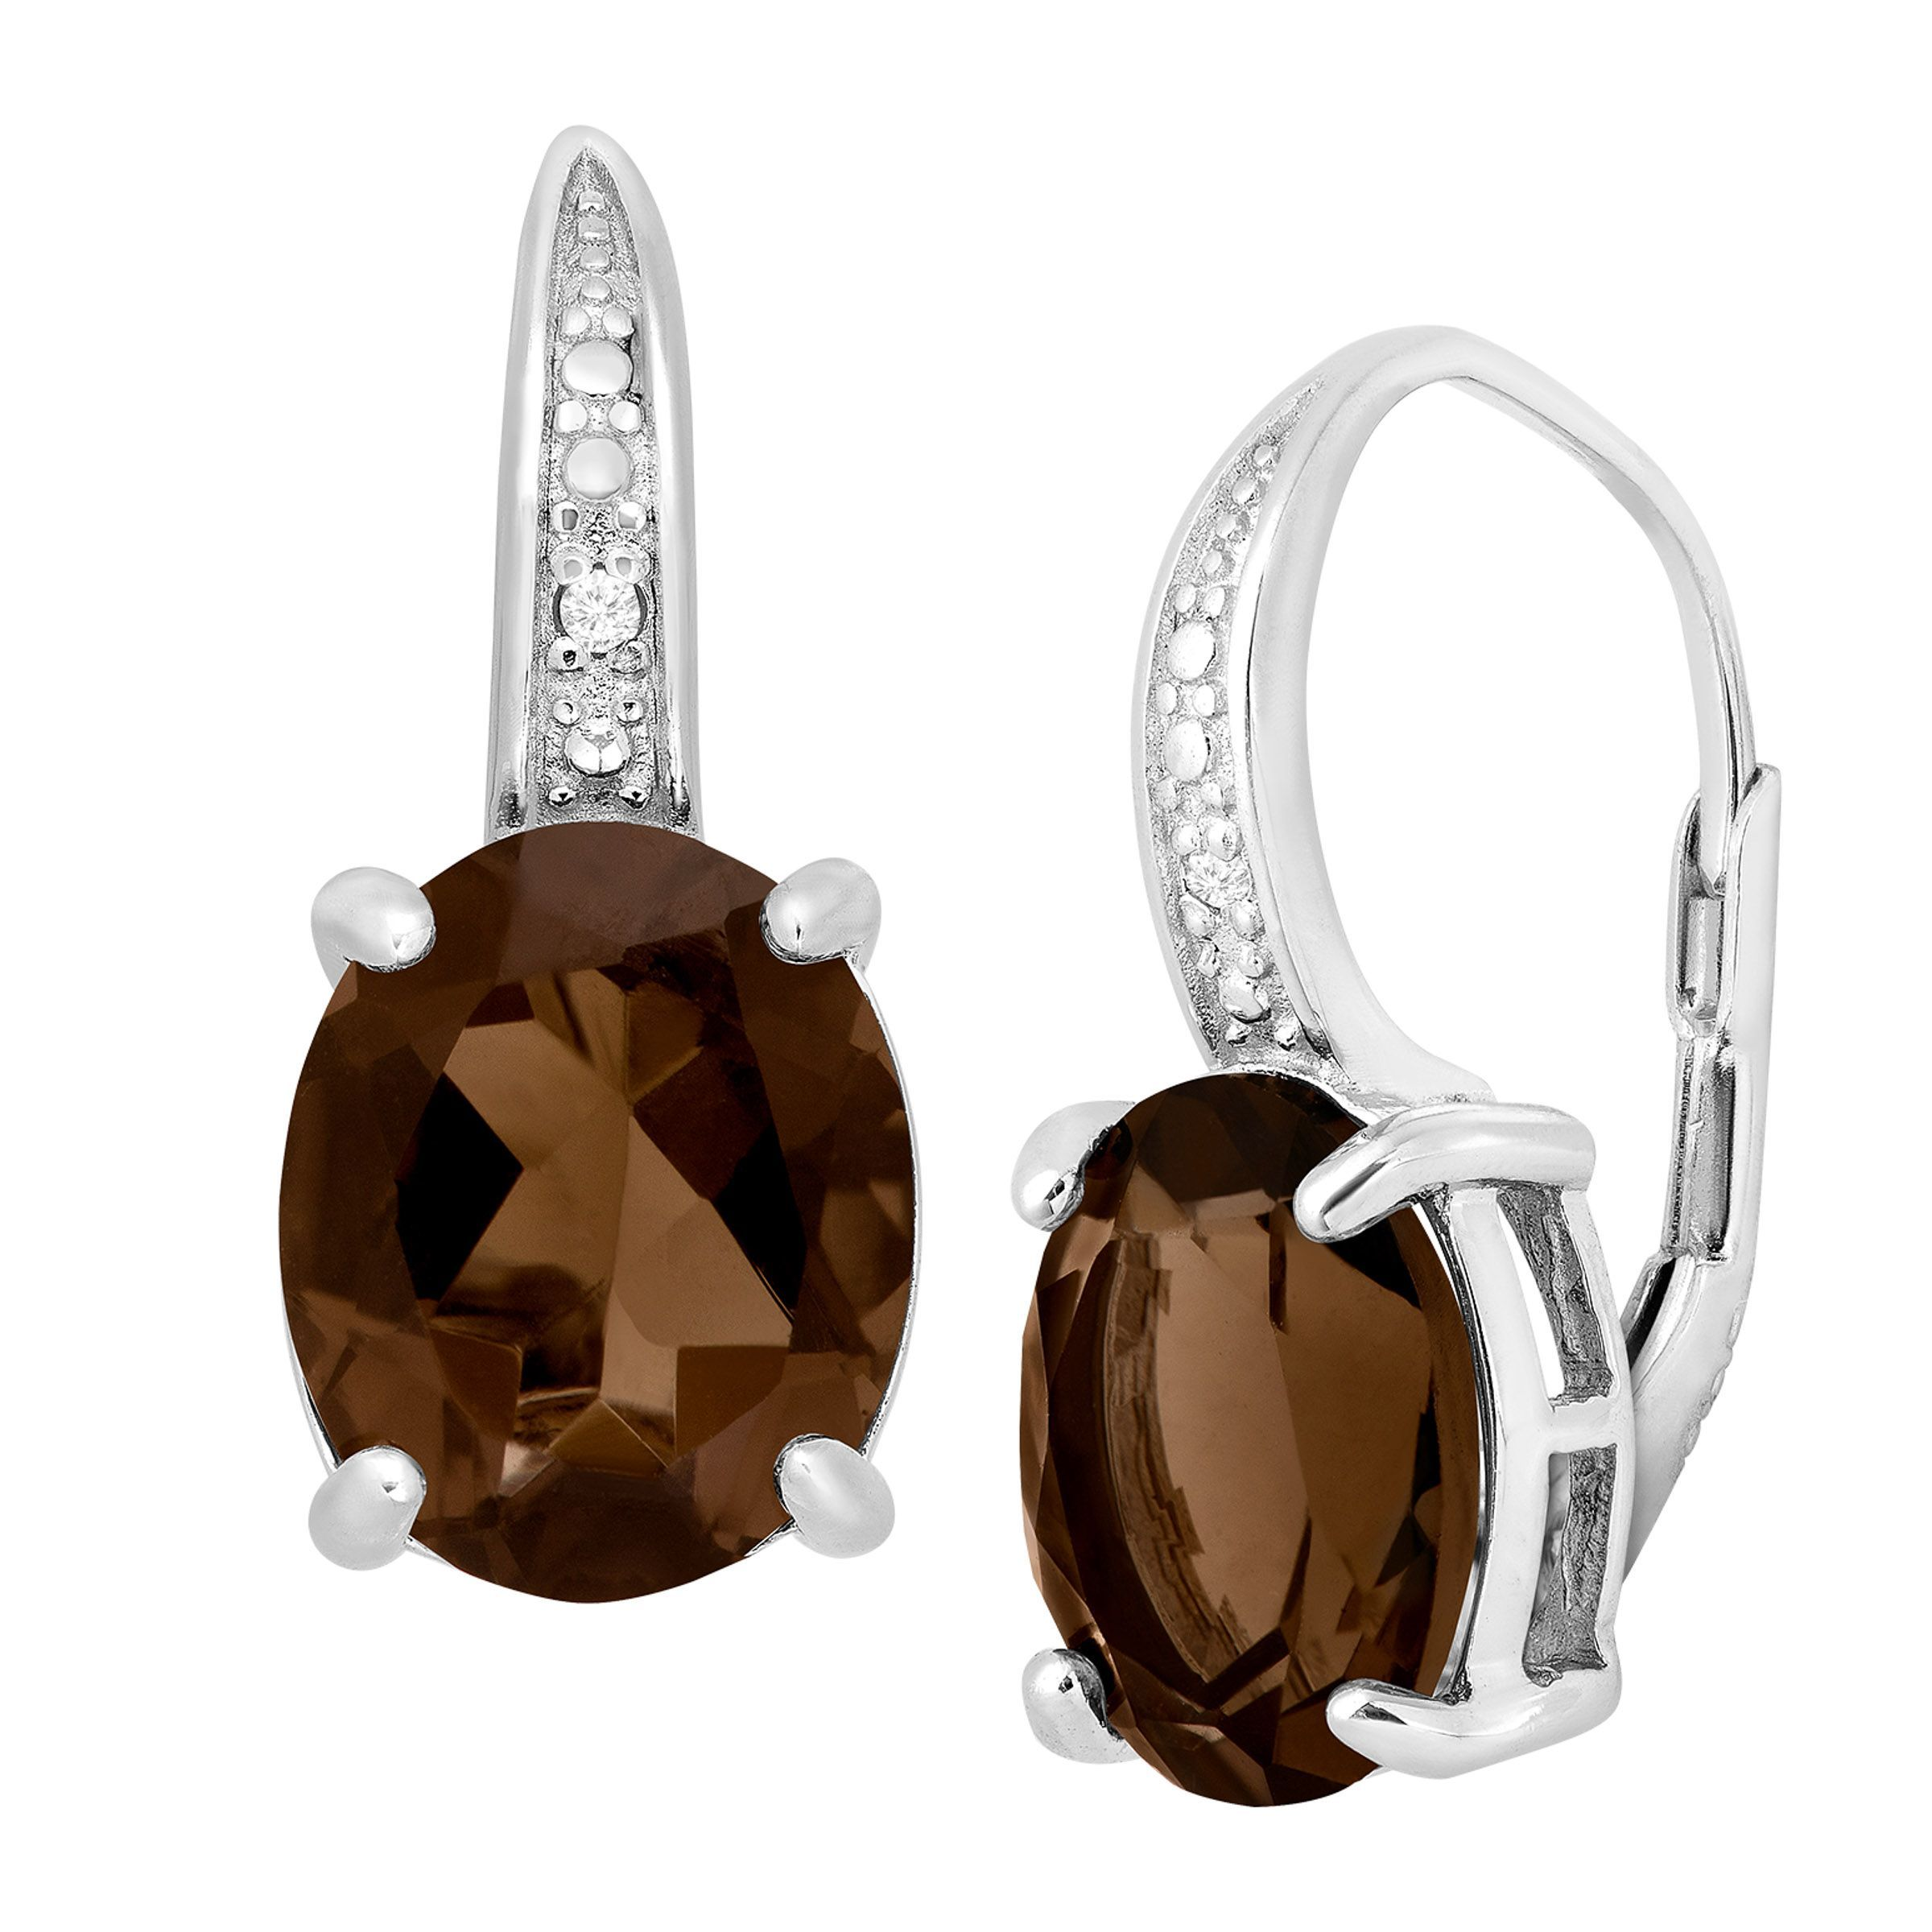 4 Ct Smoky Quartz Earrings With Diamonds In Sterling Silver